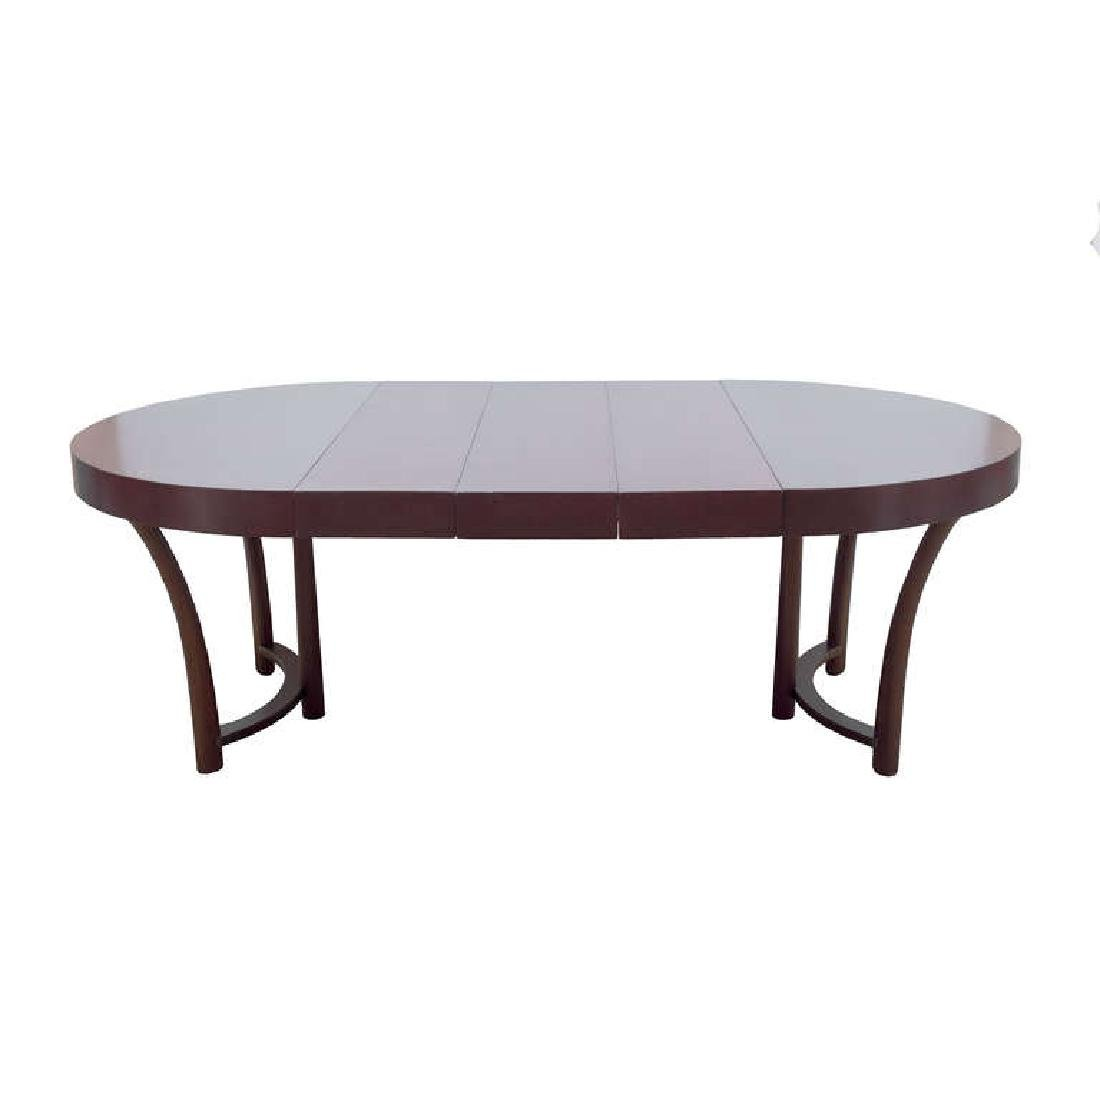 T.H Robsjohn-Gibbings Dining Table - 3